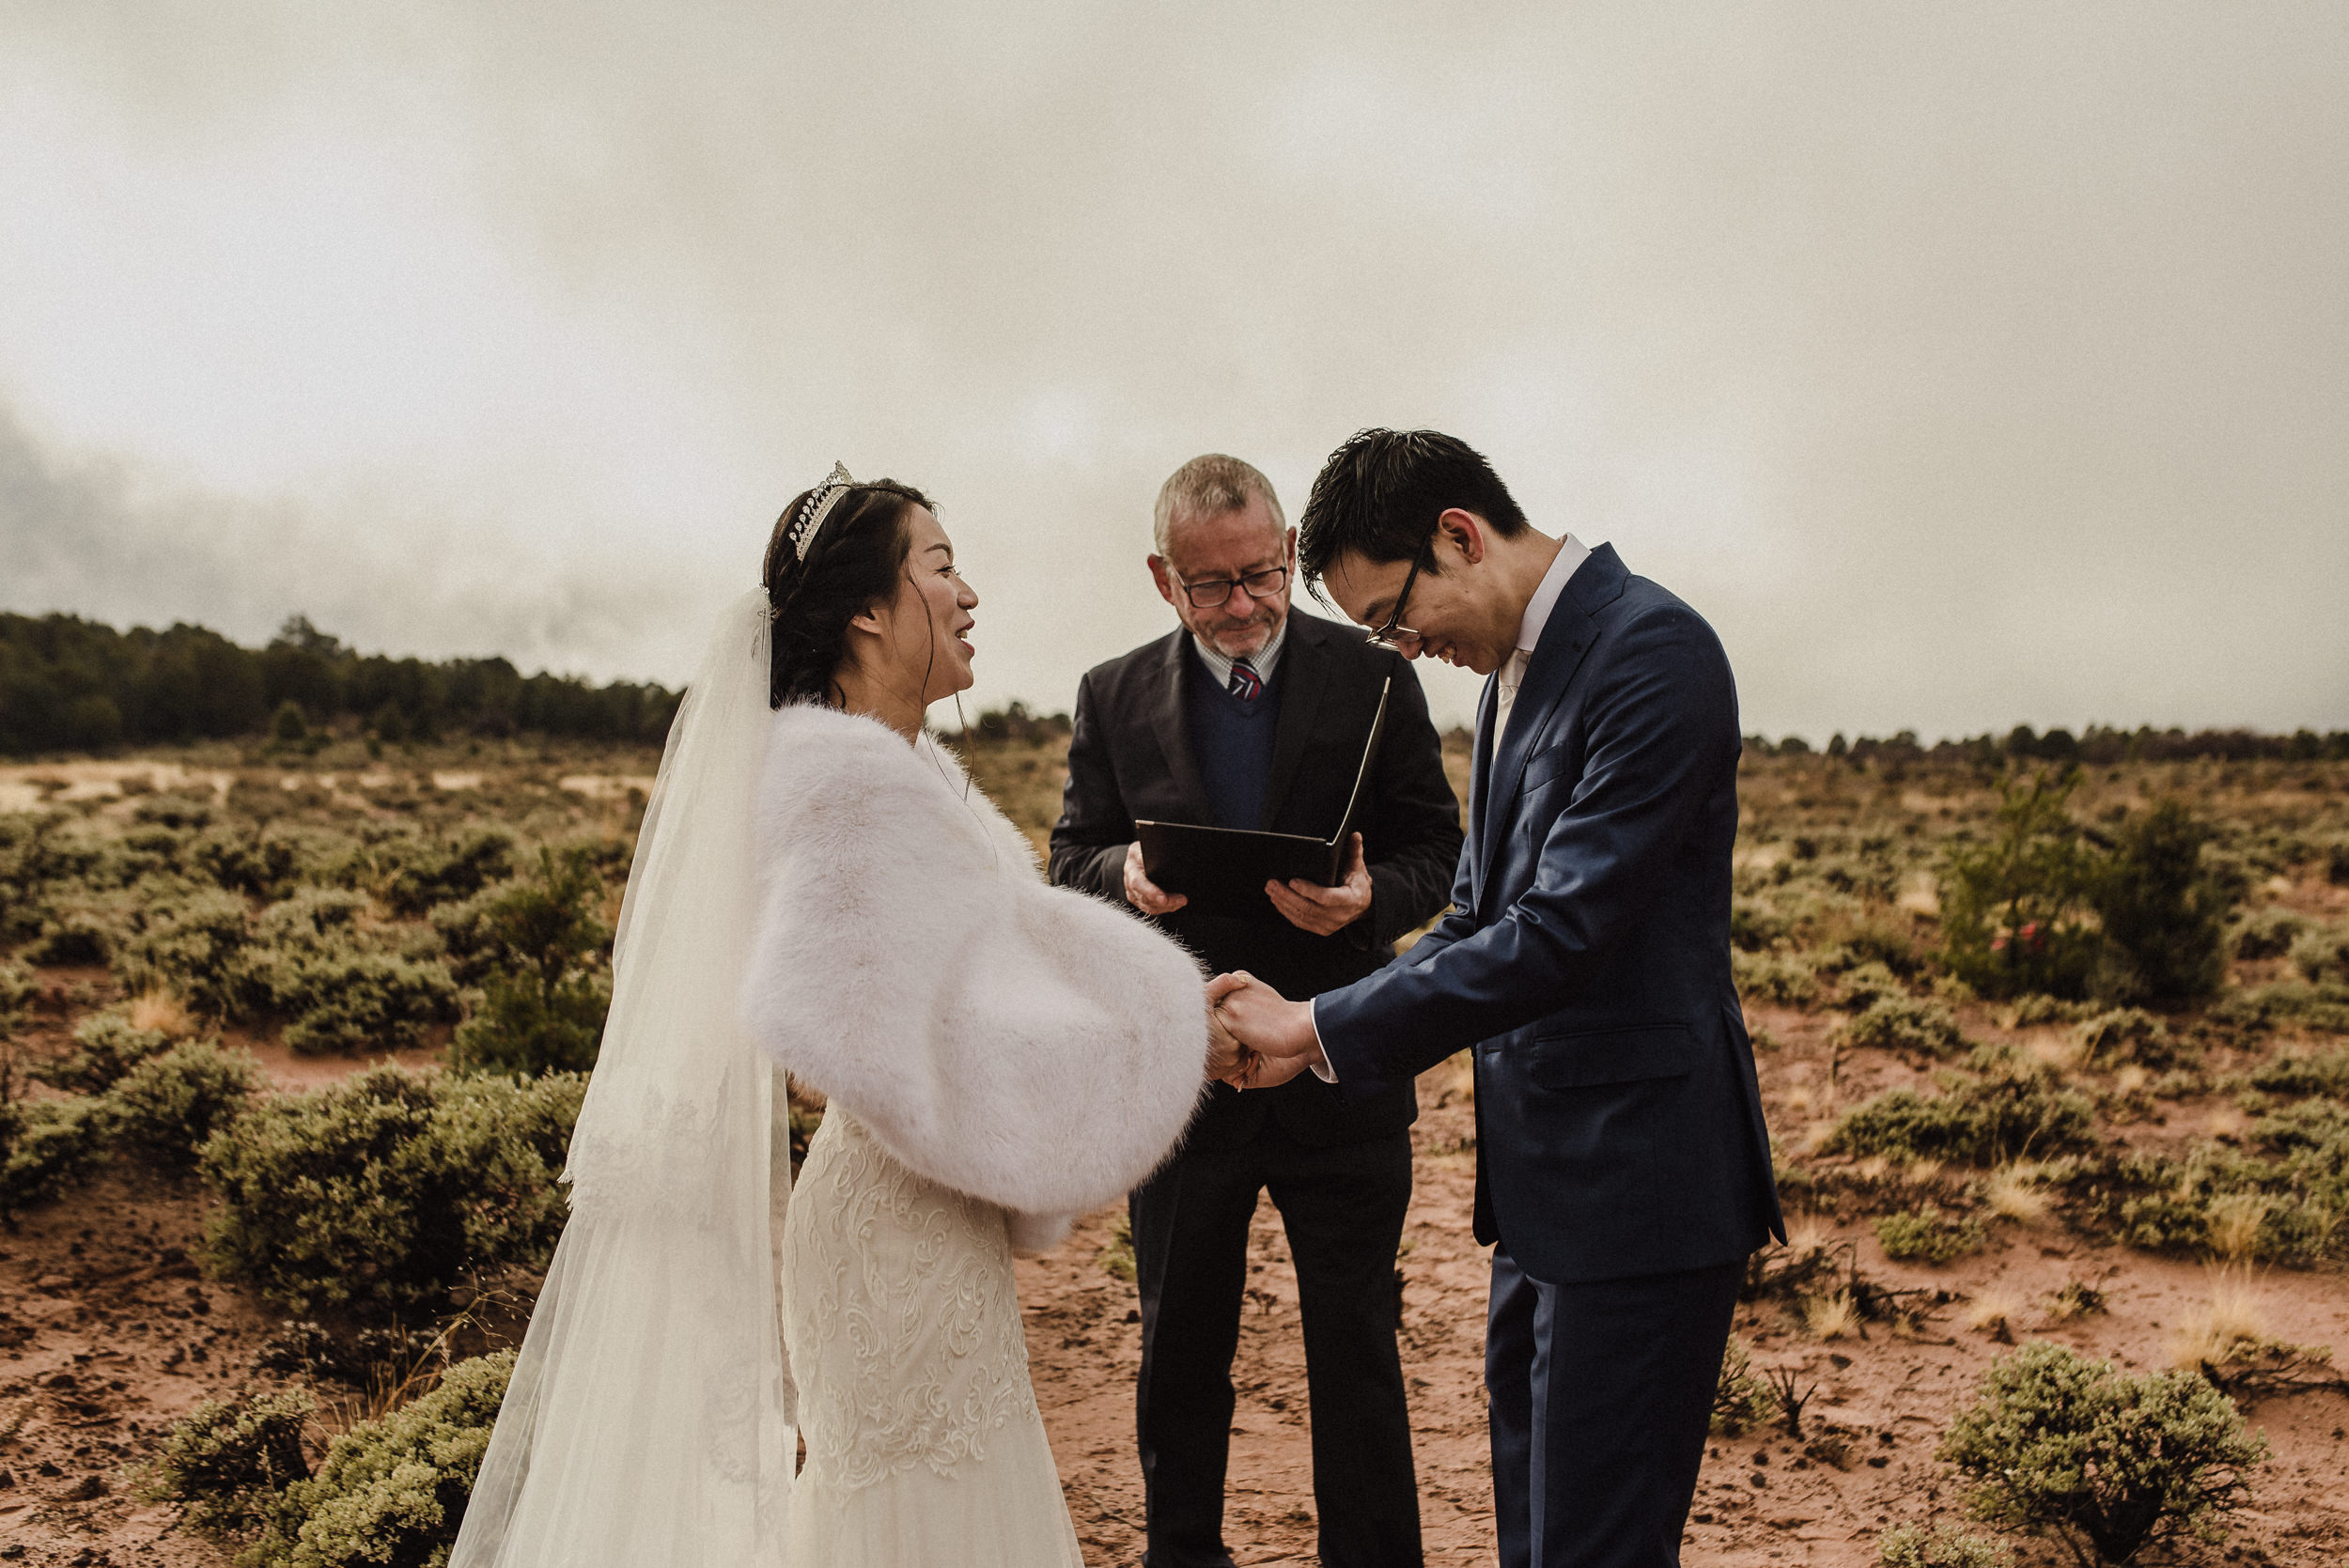 Magical utah ceremony